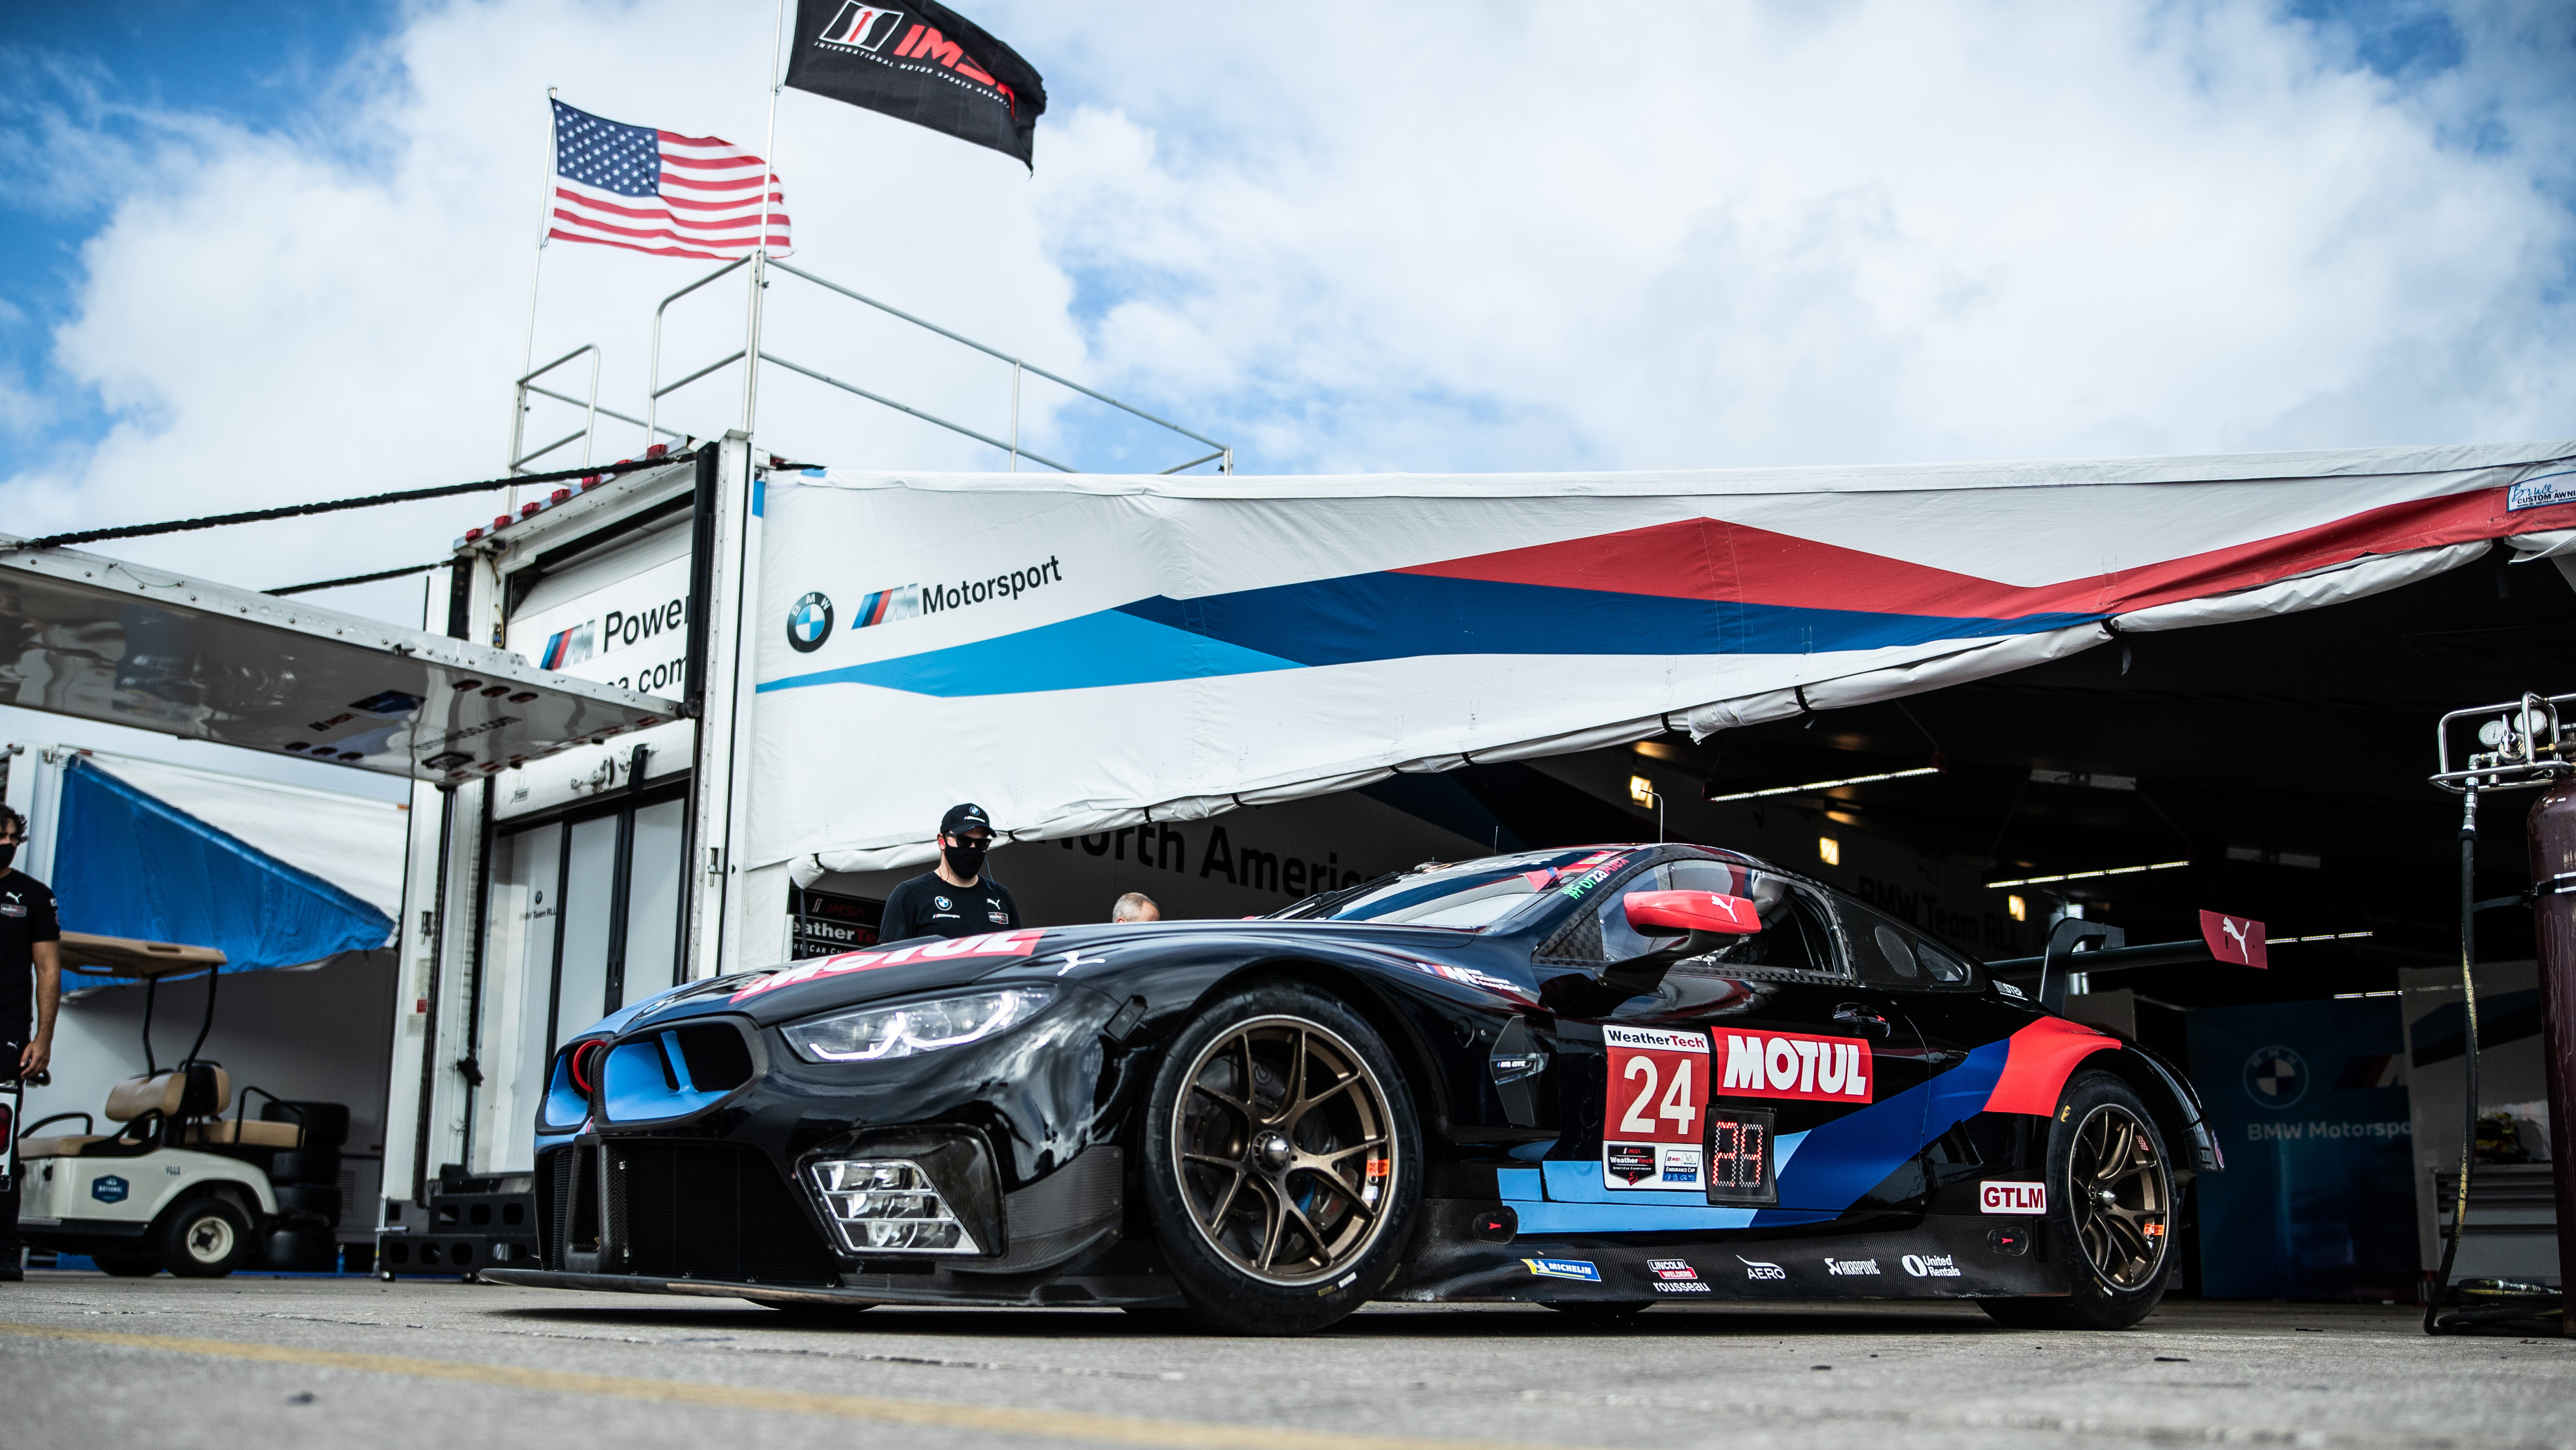 BMW Team RLL qualifies second and third for Mobil 1 Twelve Hours of Sebring; No. 96 Turner Motorsport BMW M6 GT3 starts seventh in GTD.<br />